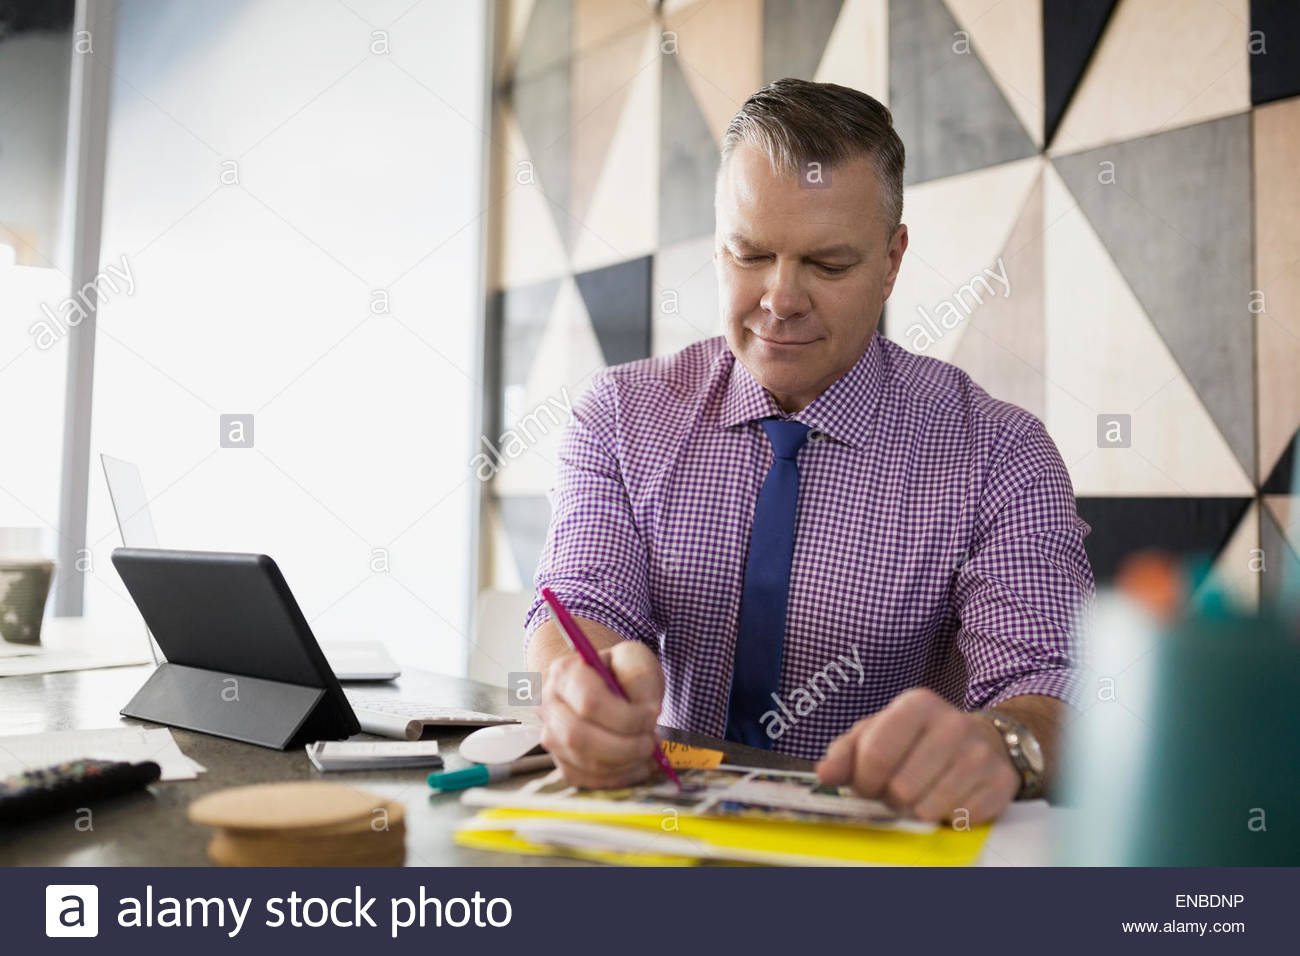 Graphic designer editing proofs in office - Stock Image